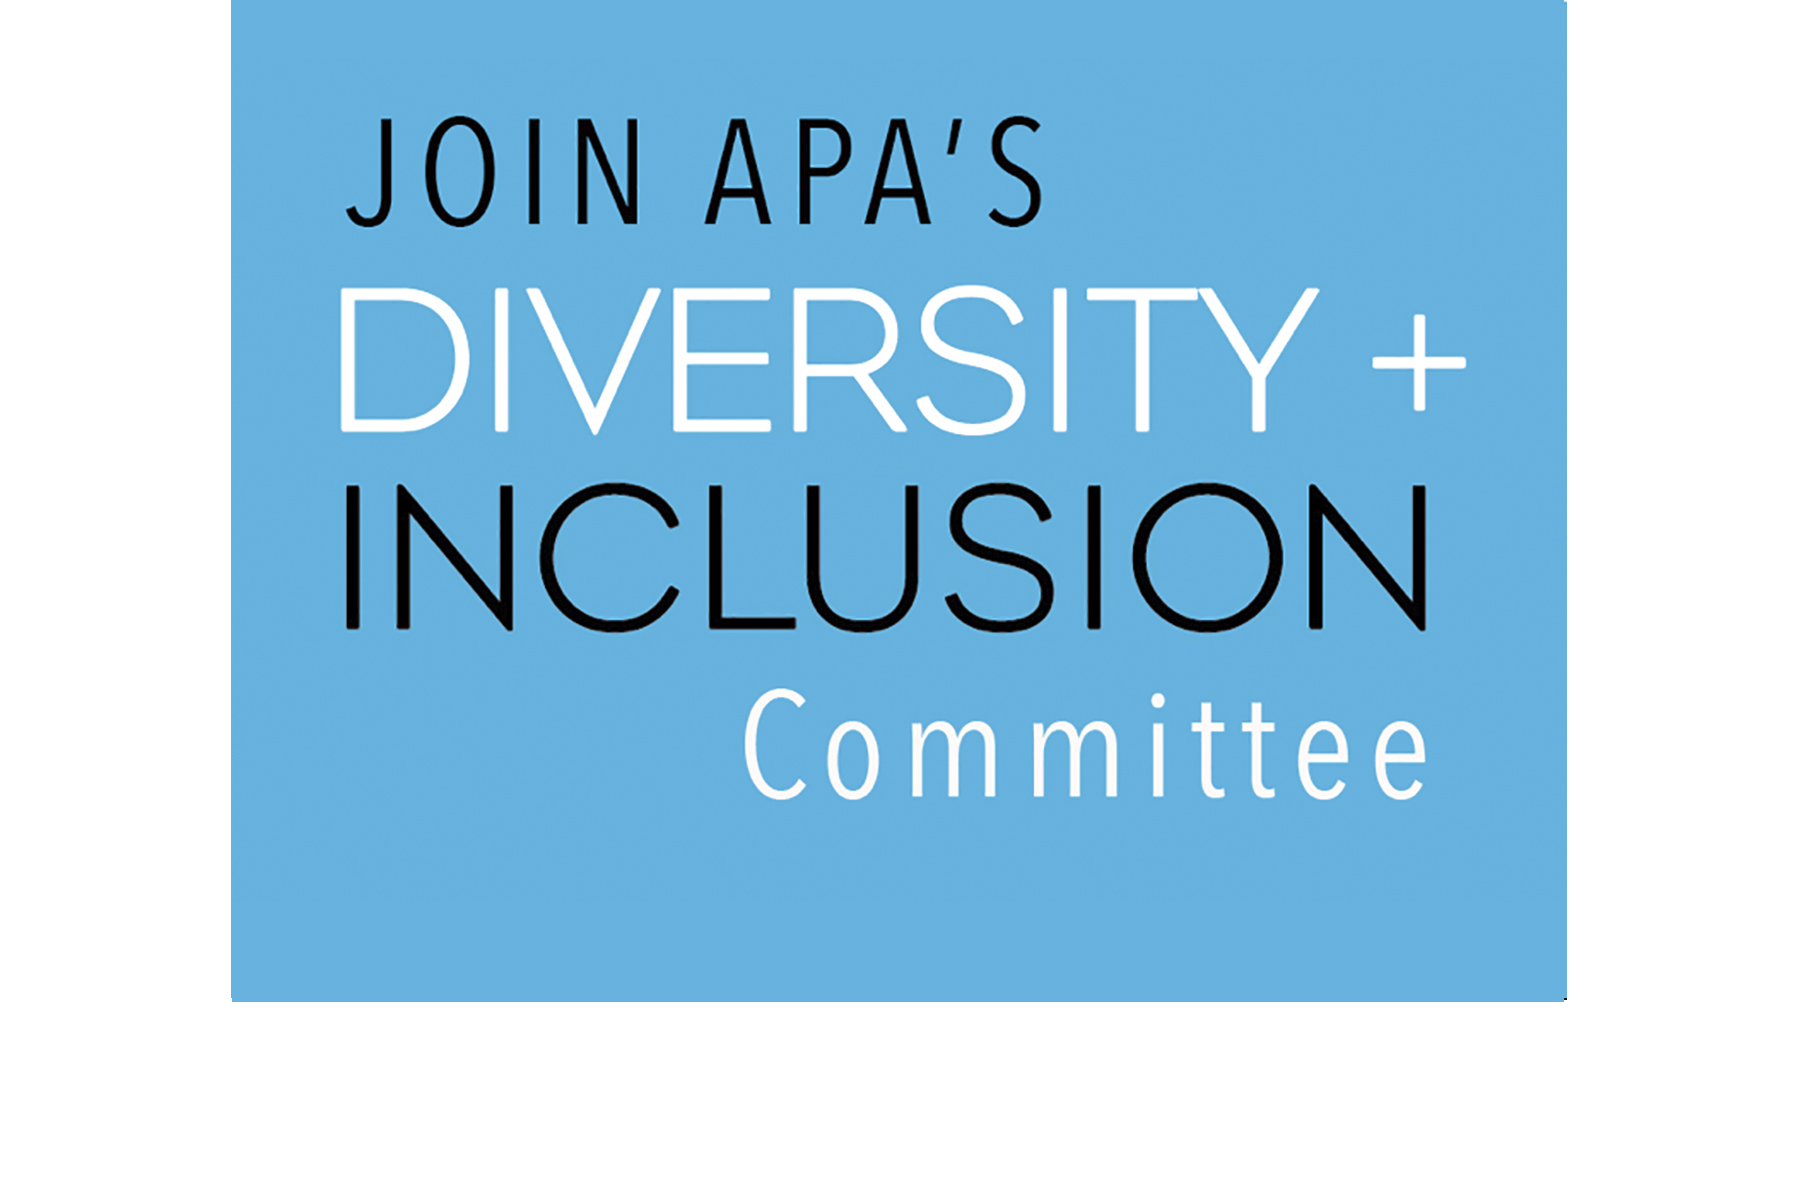 Join APA'S Diversity Committee